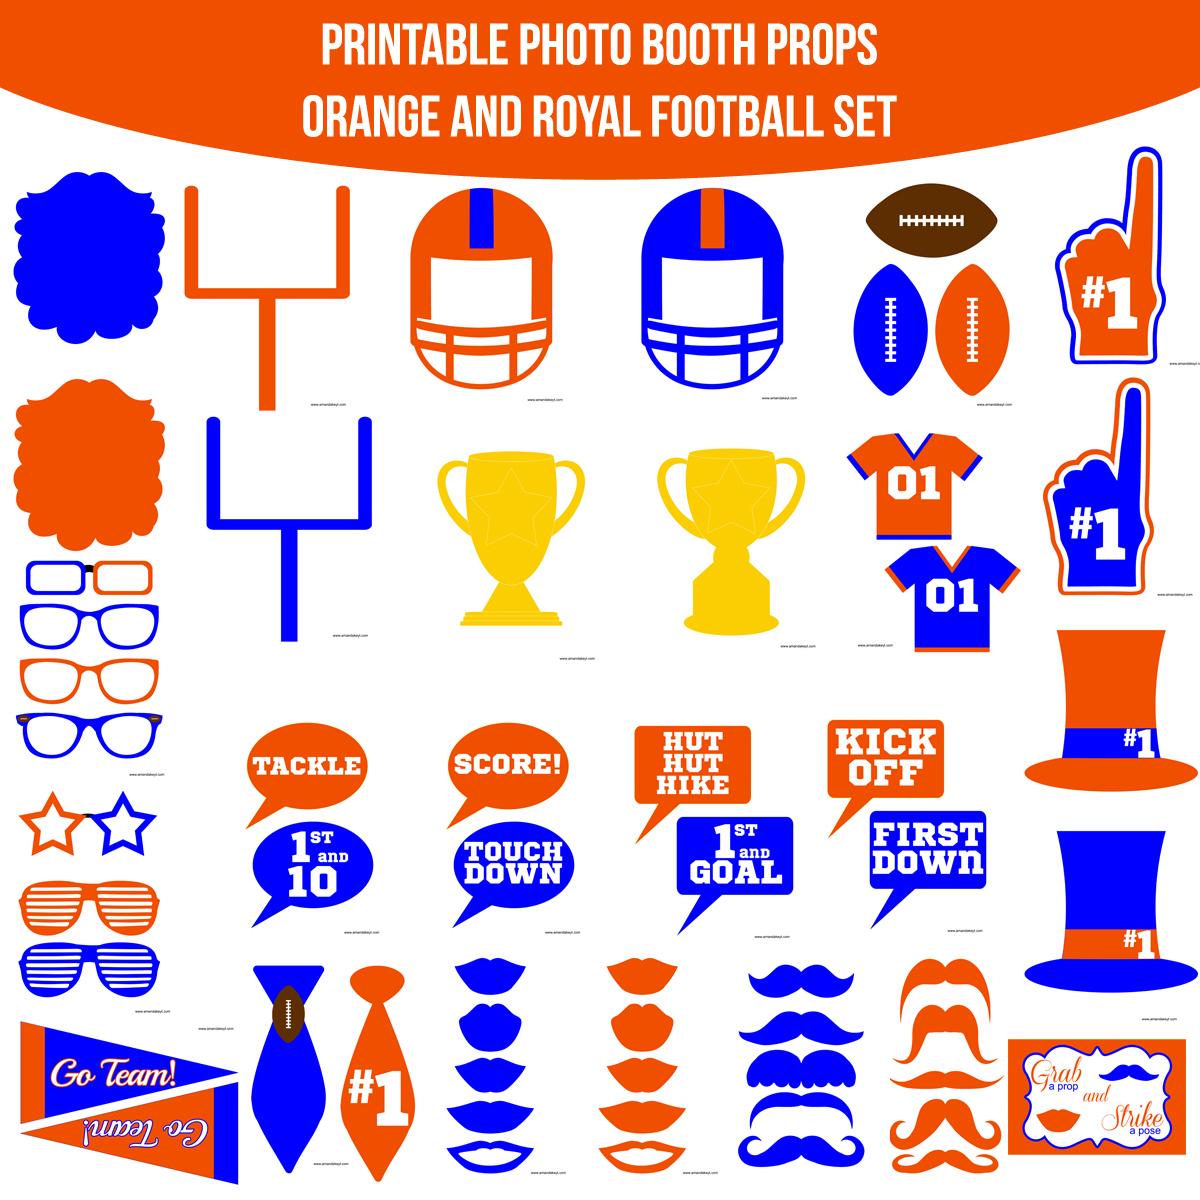 See the Set - To View The Whole Football Orange Royal Printable Photo Booth Prop Set Click Here